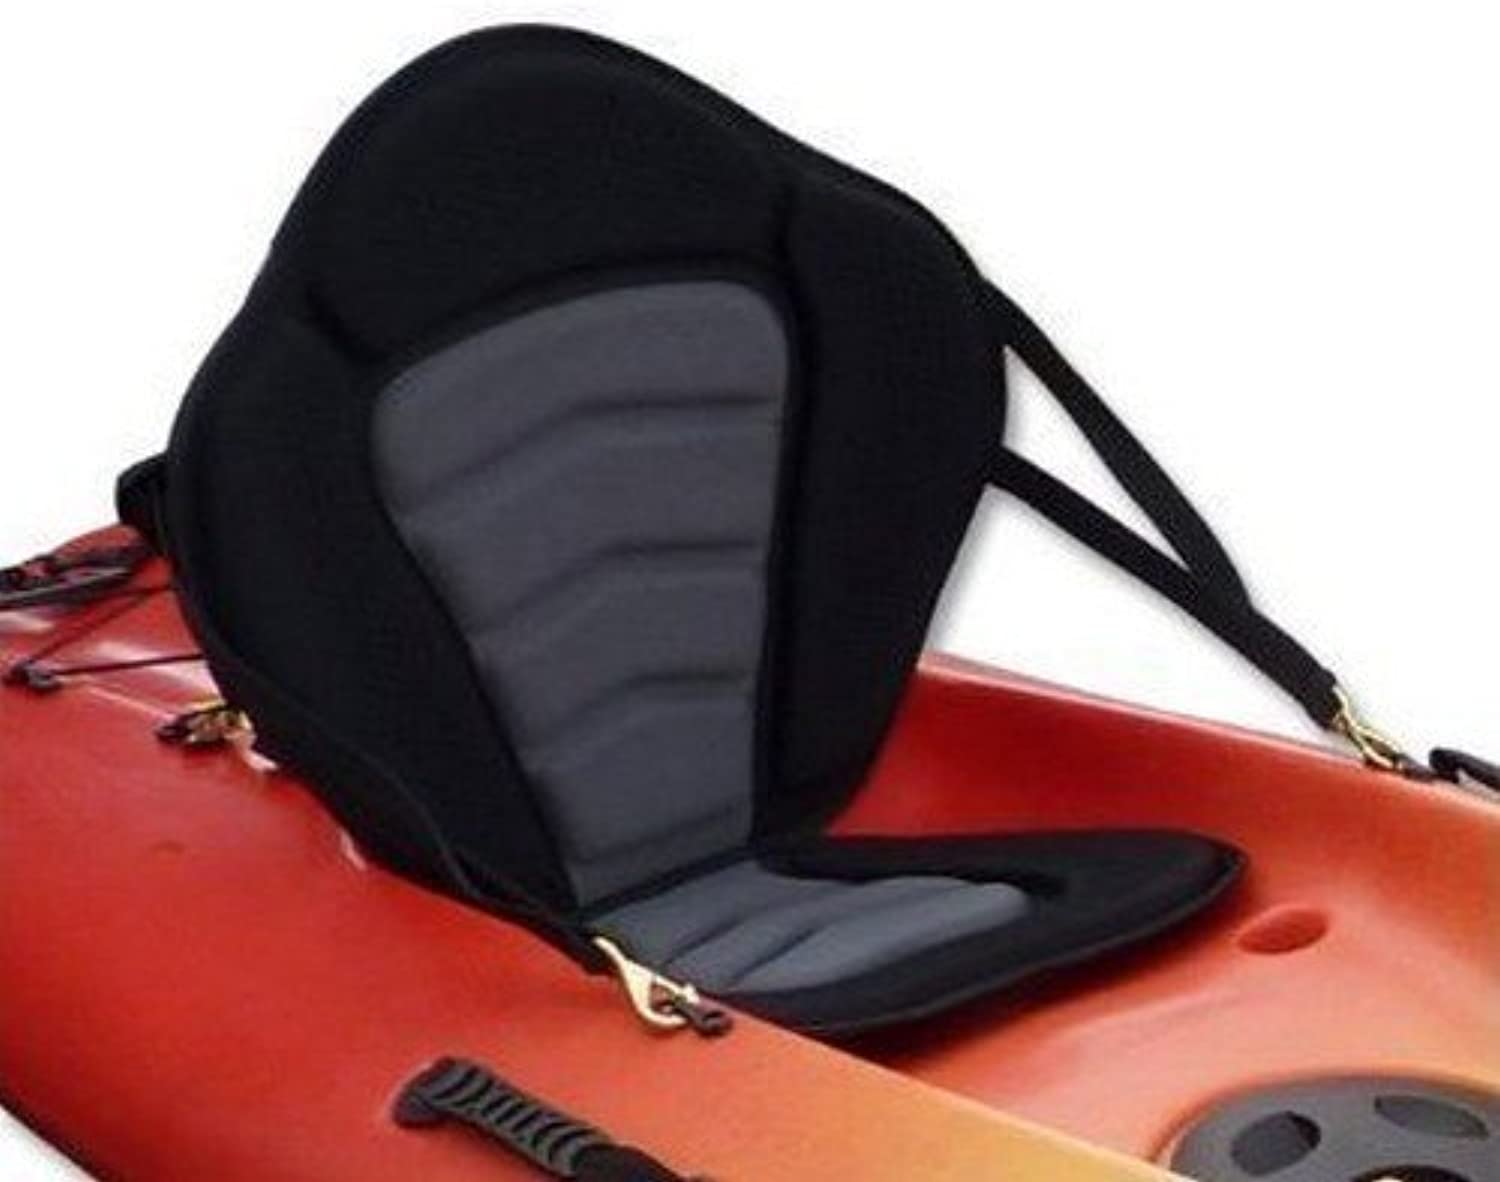 Pactrade Marine Adjustable Padded Deluxe Kayak Seat Detachable Back Backpack Bag Canoe Backrest by Pactrade Marine